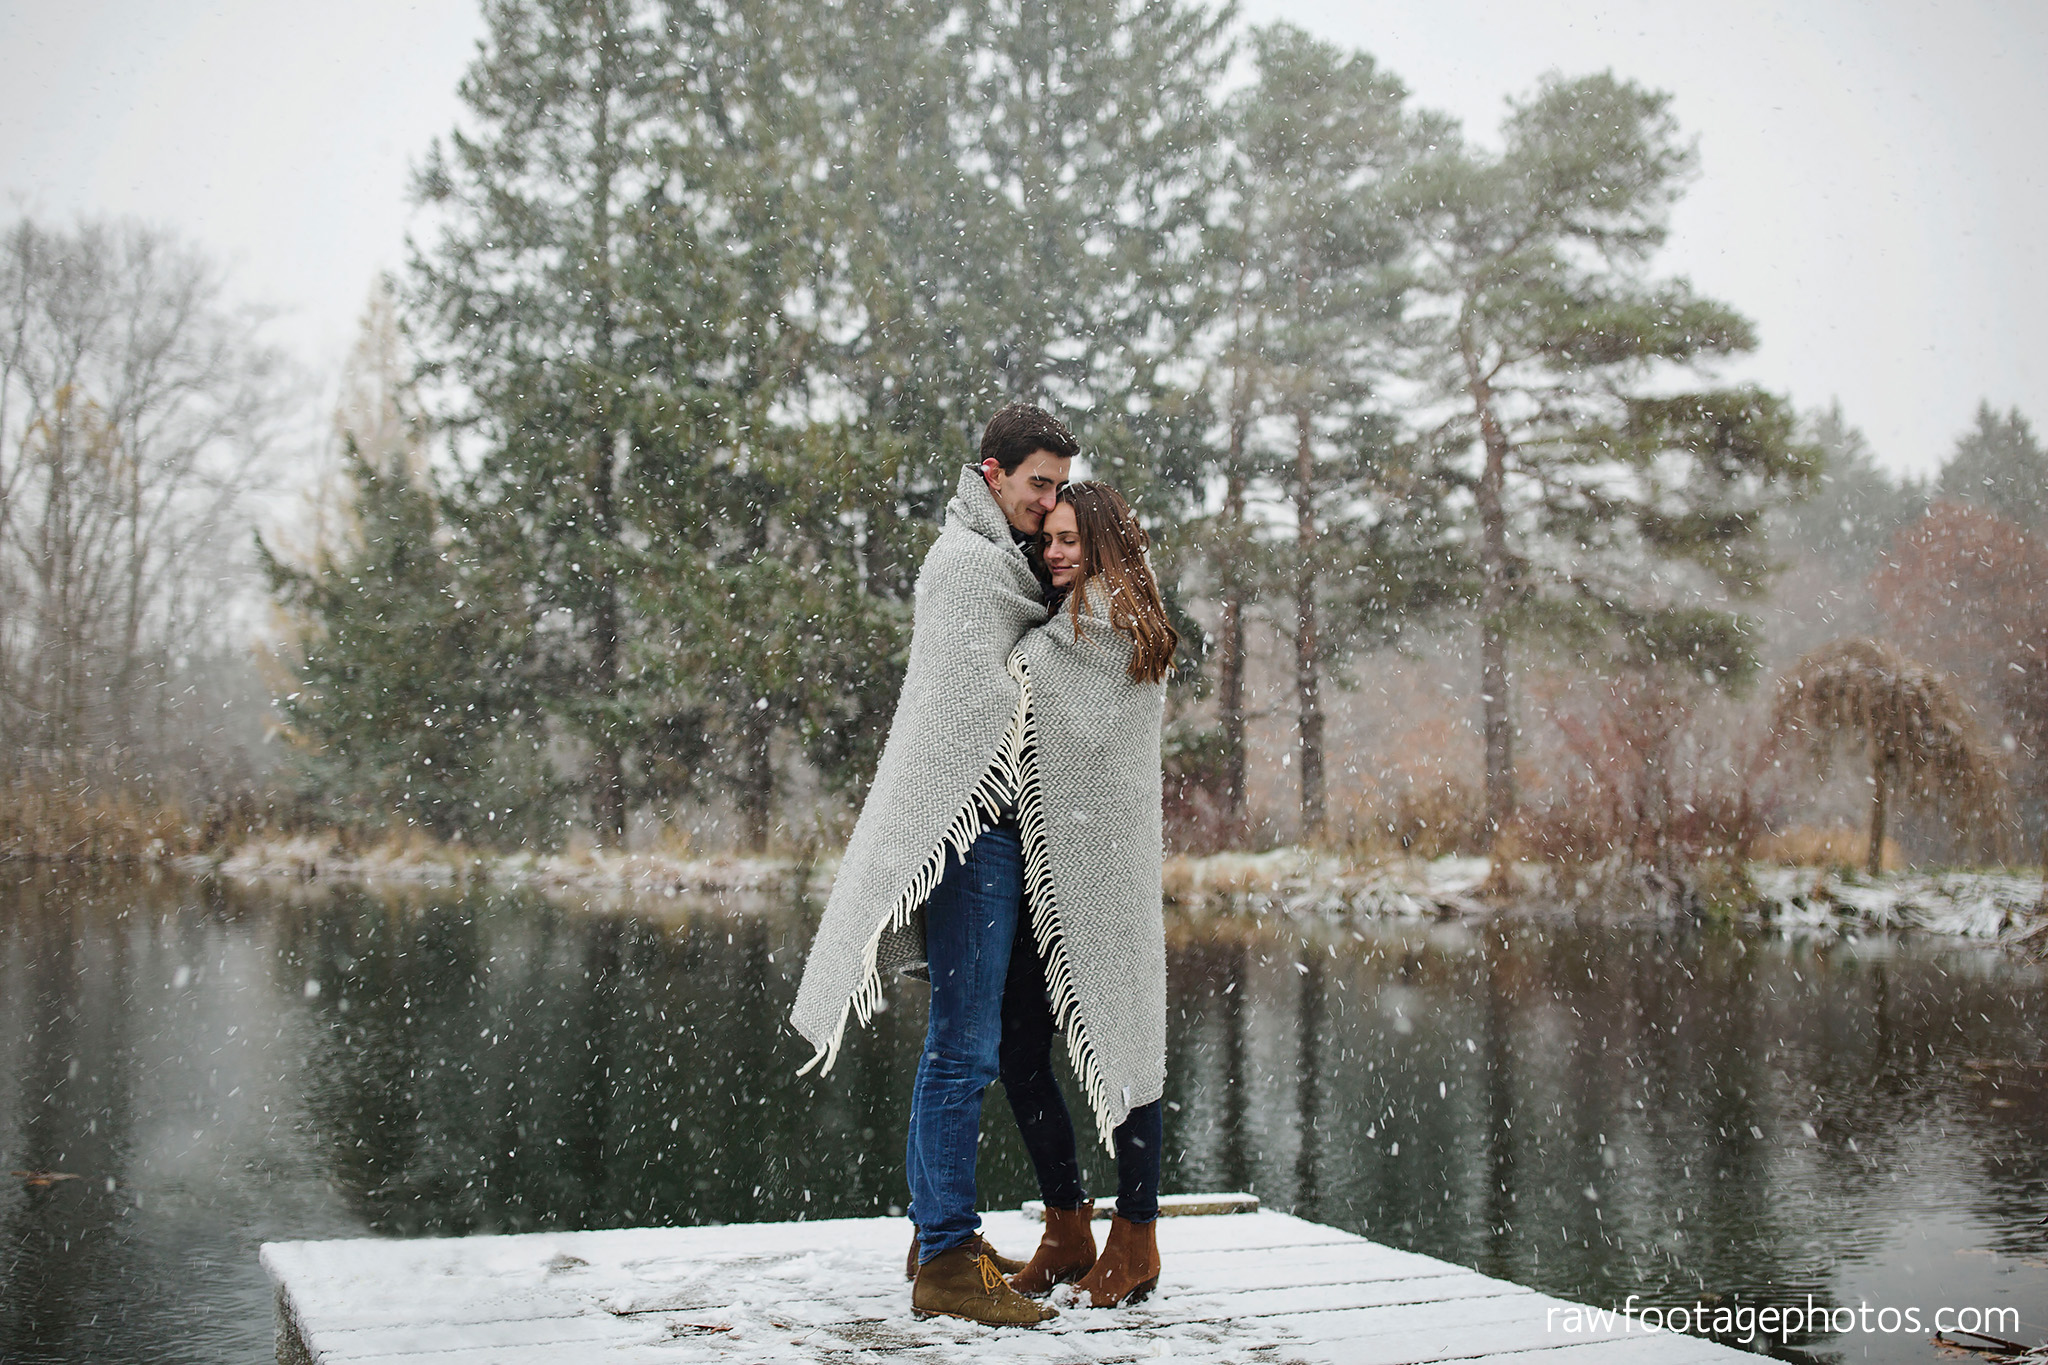 london_ontario_wedding_photographer-snowy_engagement_session-winter-barn-farm-snowflakes-blizzard-raw_footage_photography011.jpg